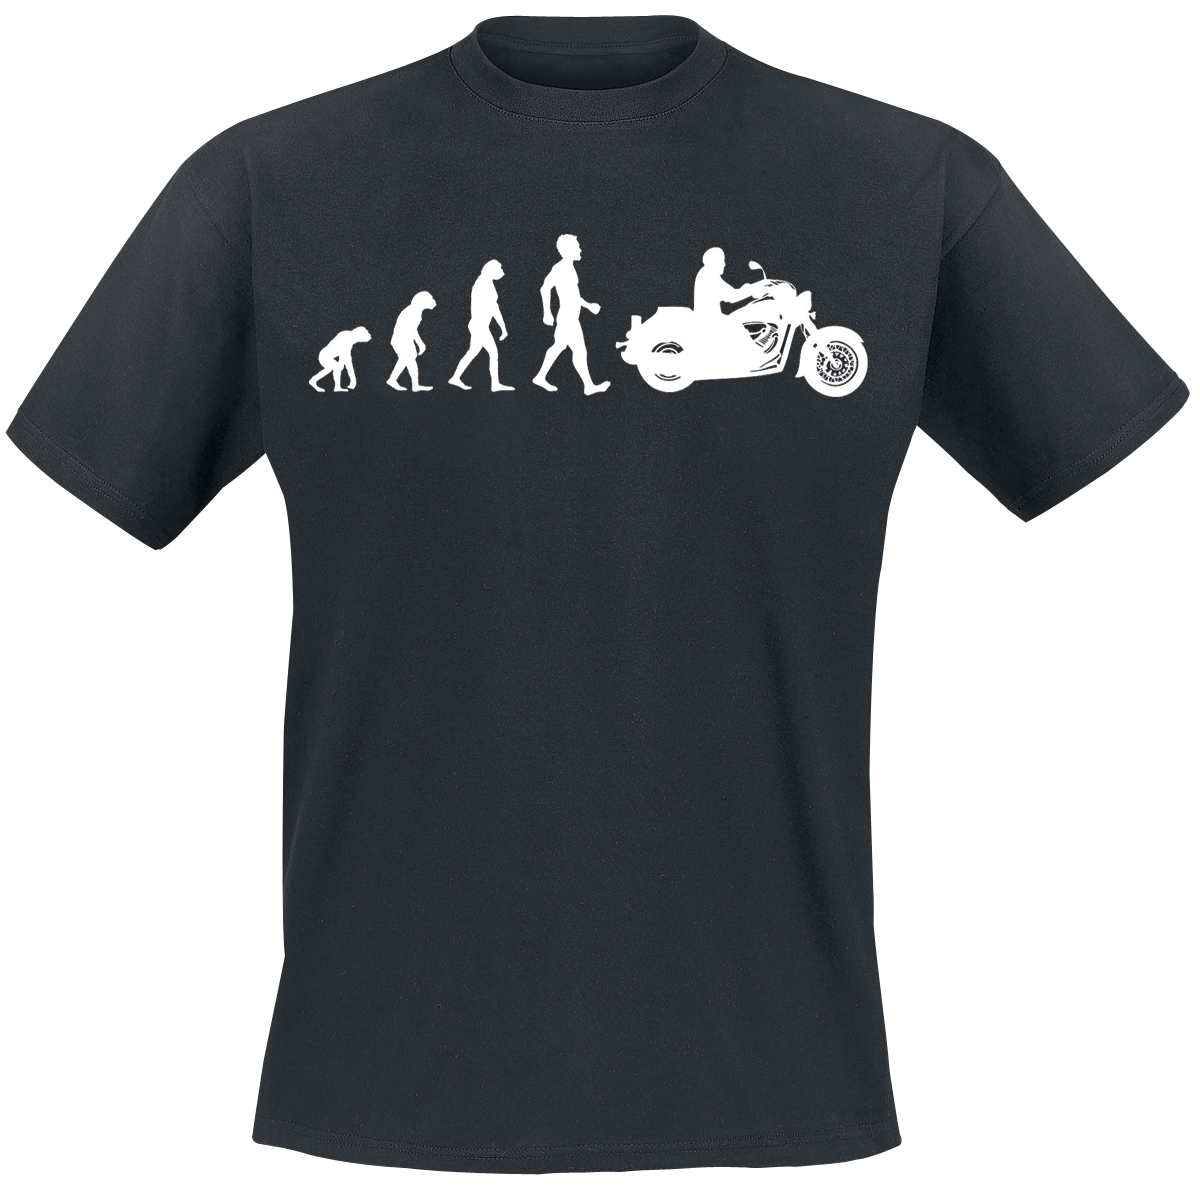 Bikers, The Pride Of Creation - - T-Shirt - black